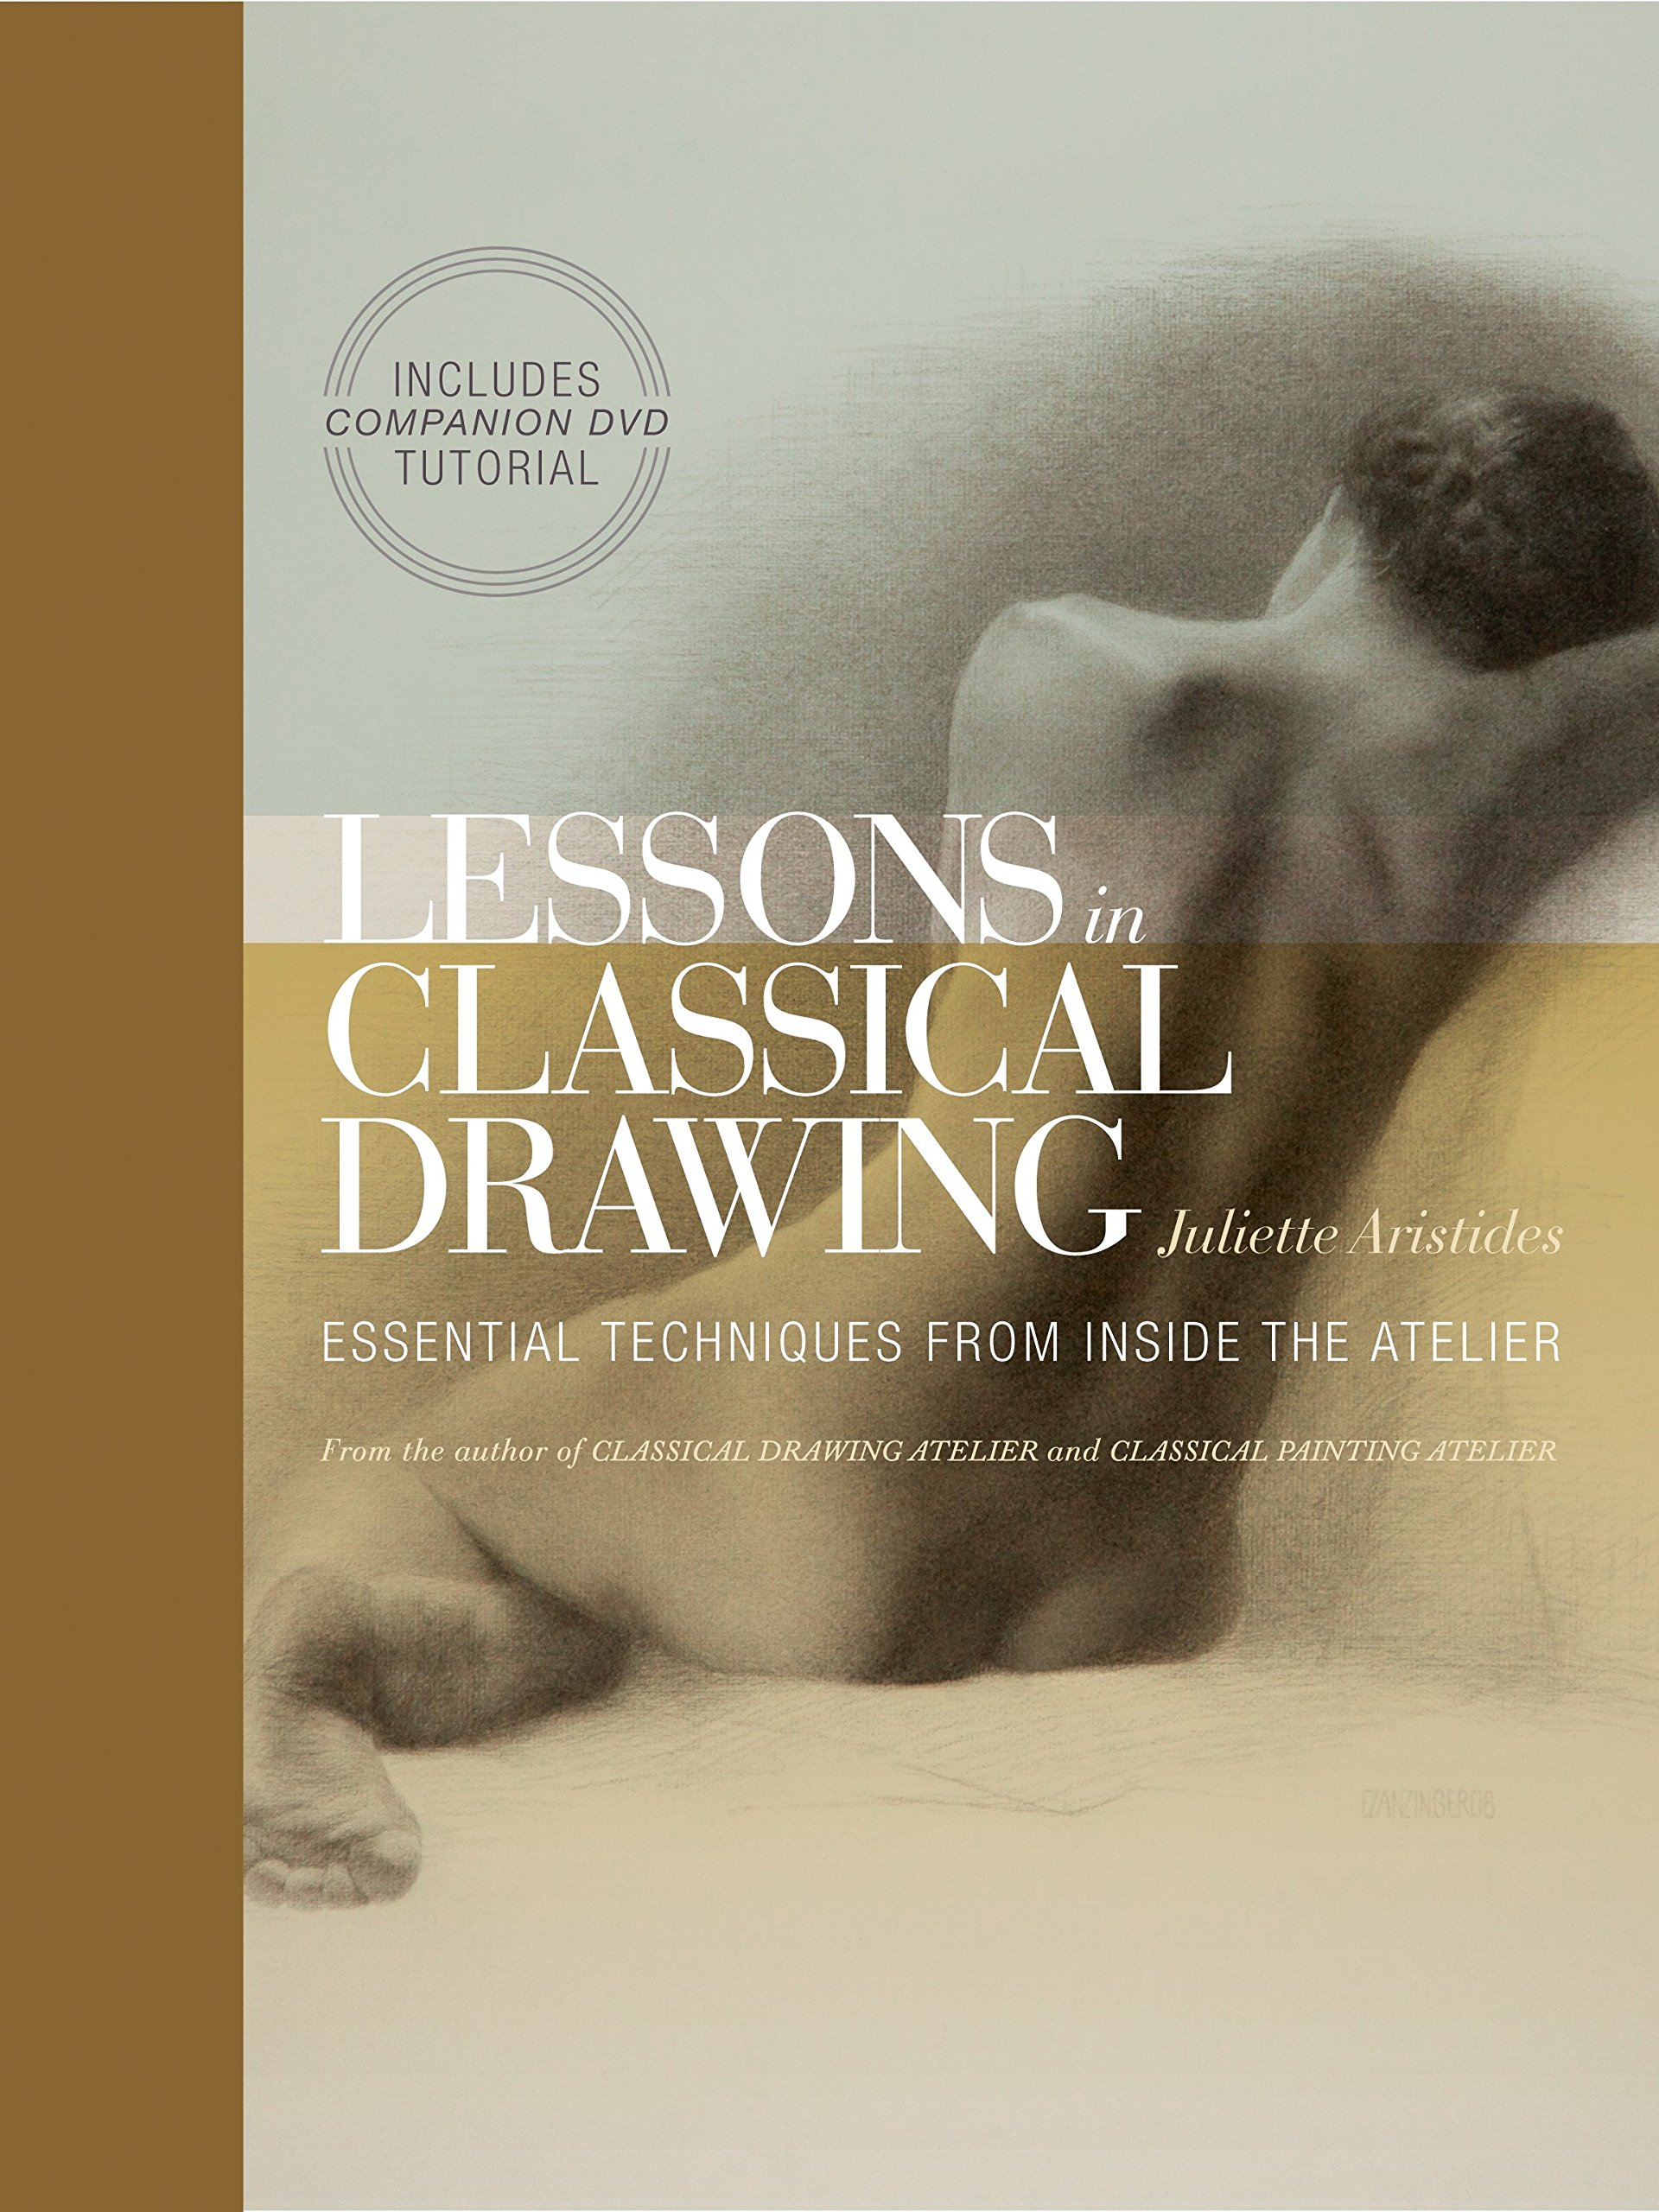 Lessons In Classical Drawing by Juliette Aristides - ★★★★★ An excellent book full of helpful tutorials and engaging stories. Aristides is as good of a writer as she is a painter- and her paintings are stellar.